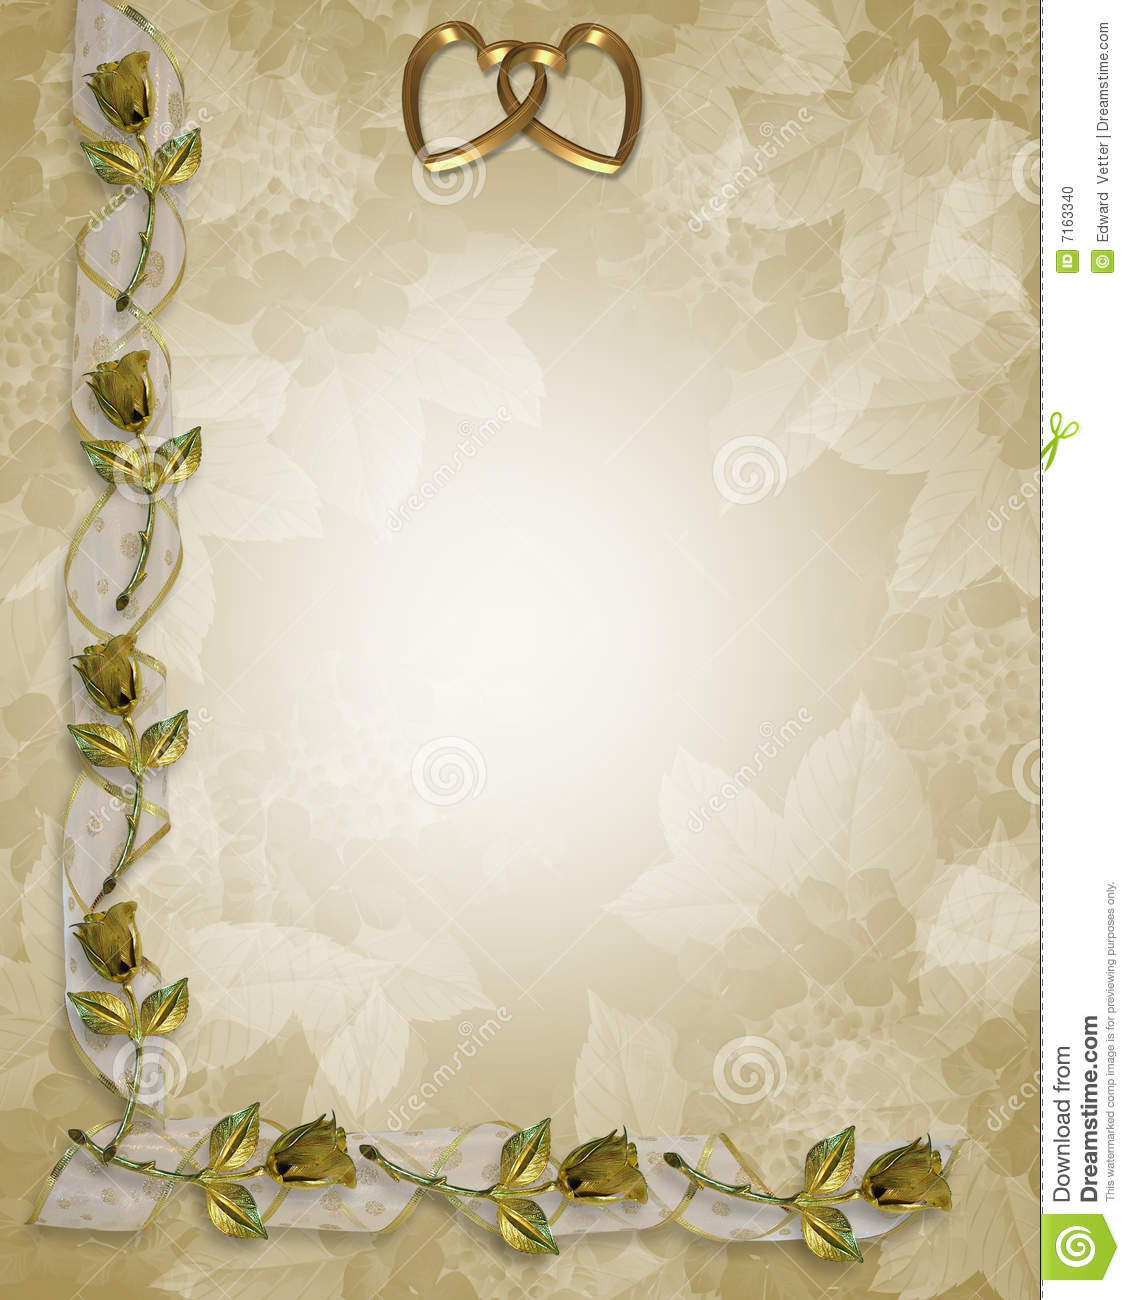 Wedding Border Gold Roses And Ribbons Stock Illustration  Image 7163340